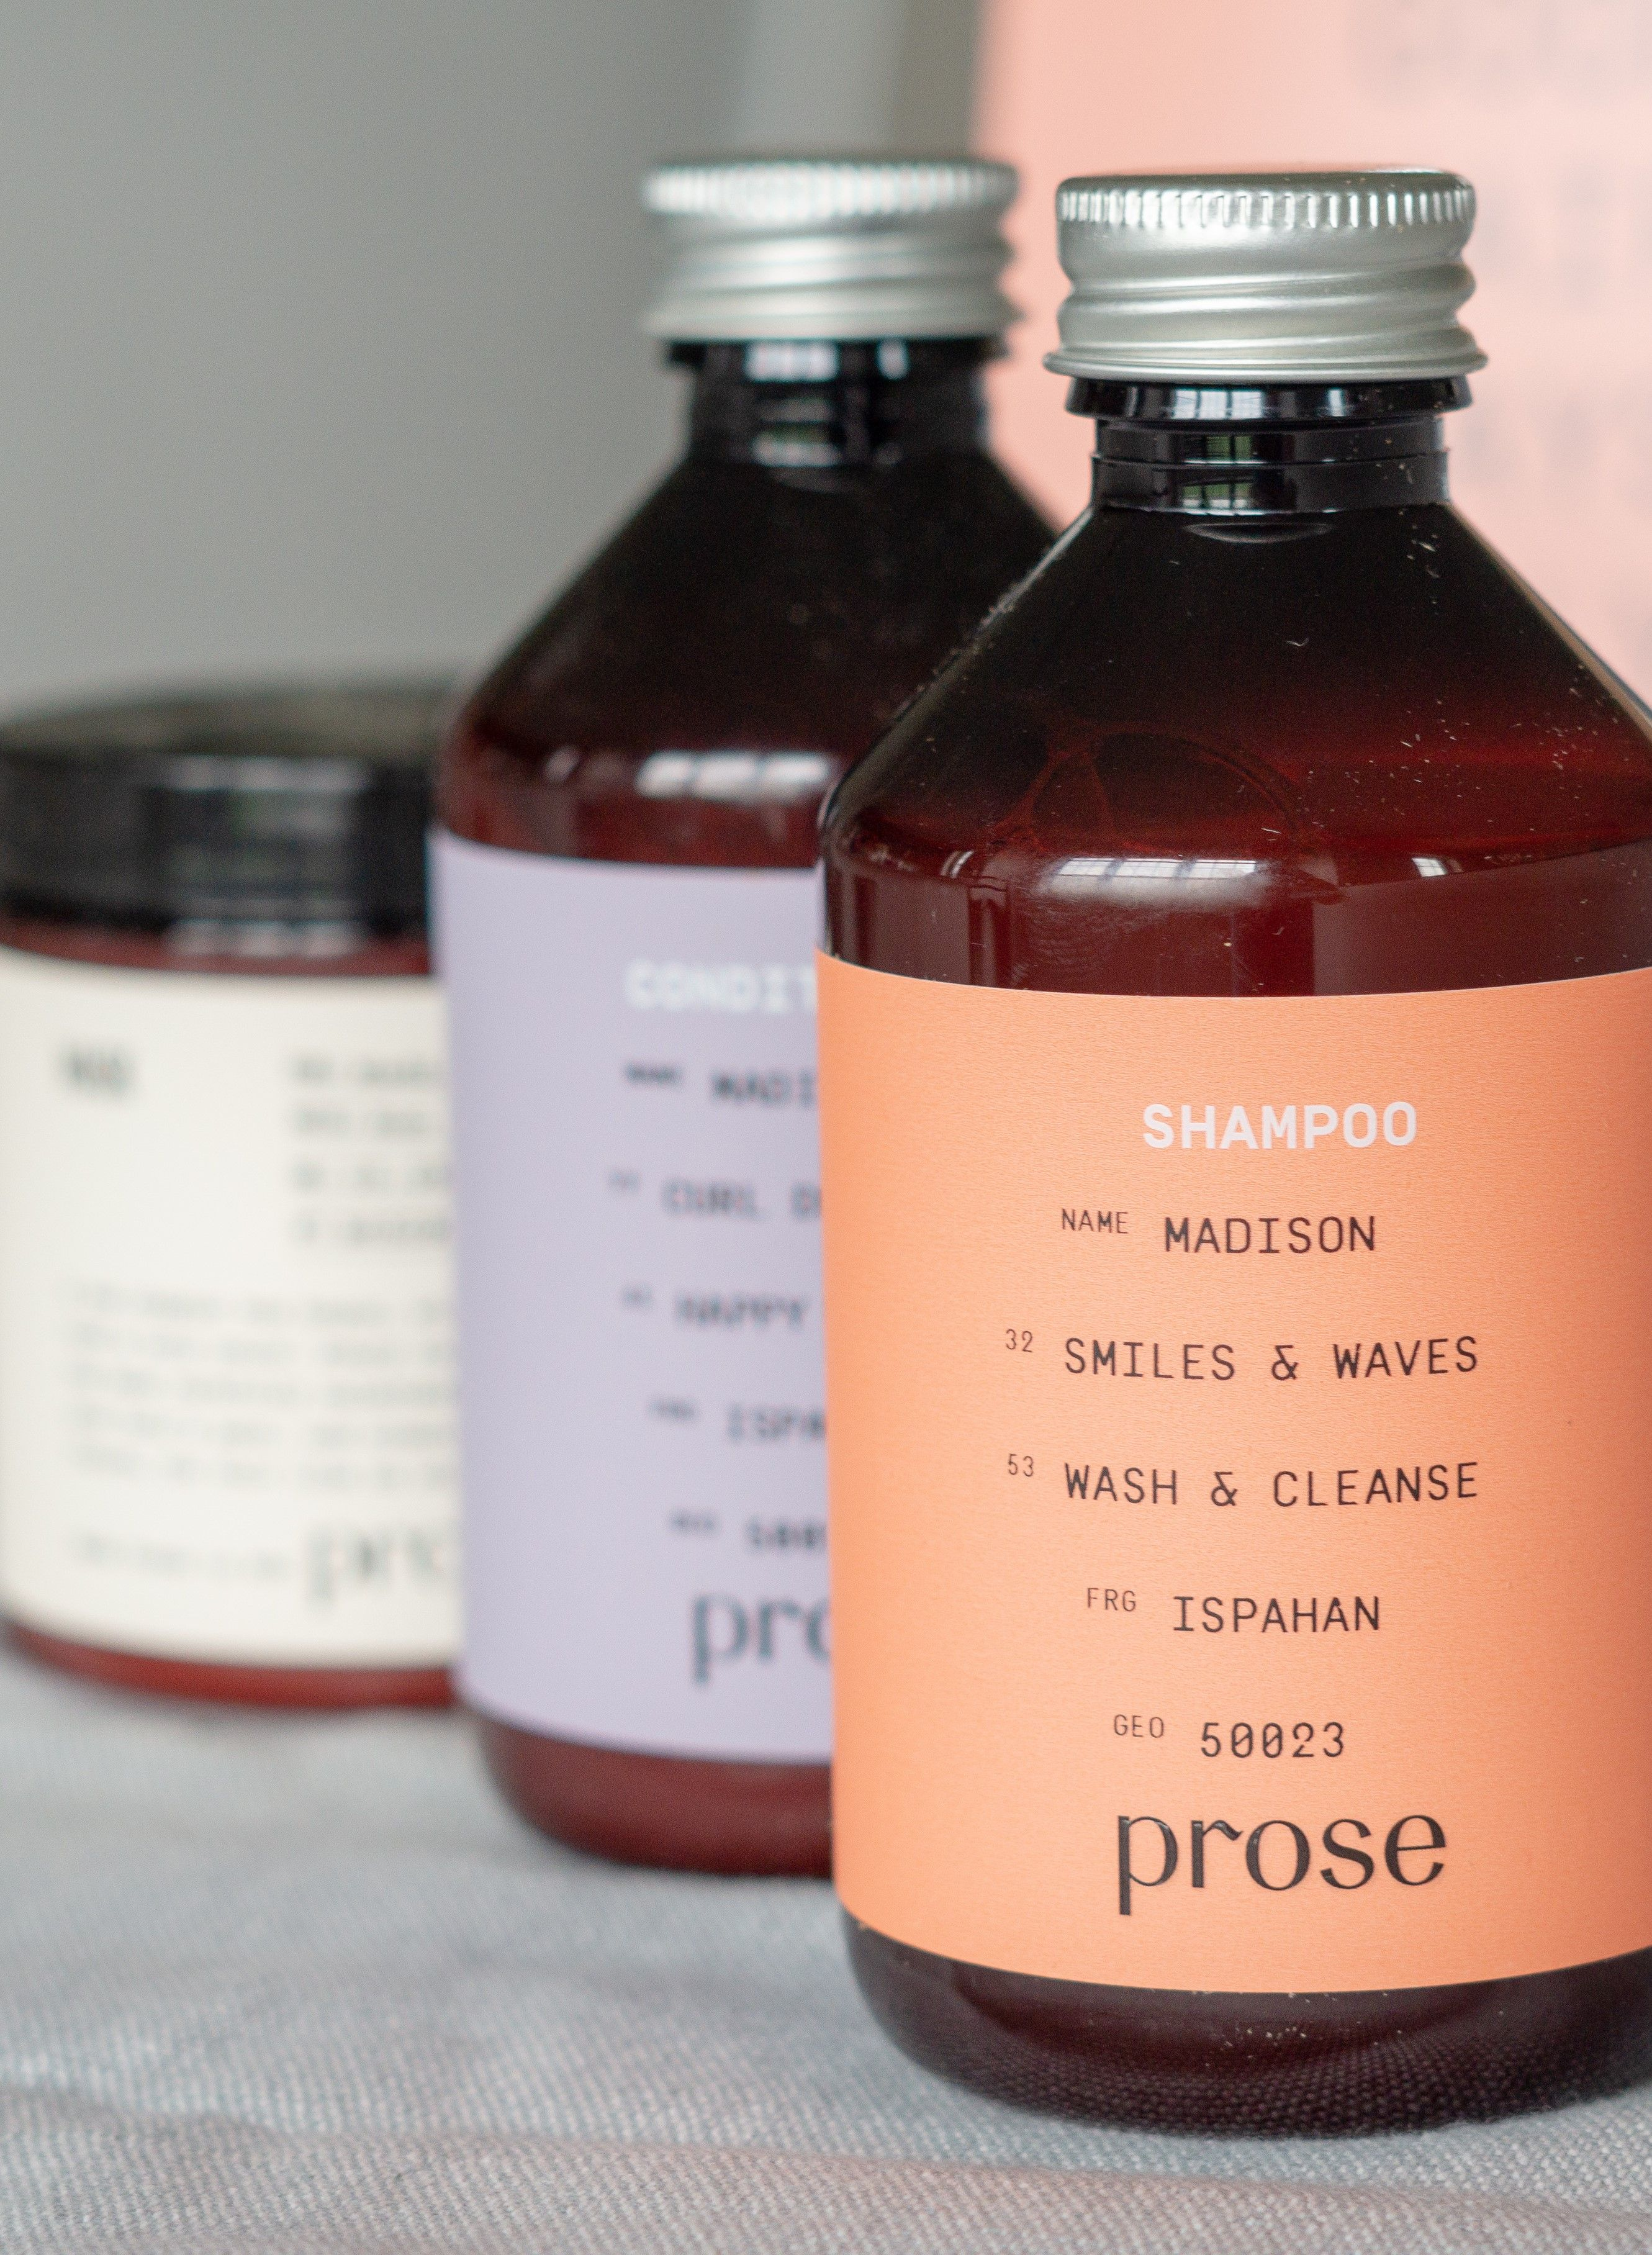 Prose Personalized Haircare Review Hair care routine